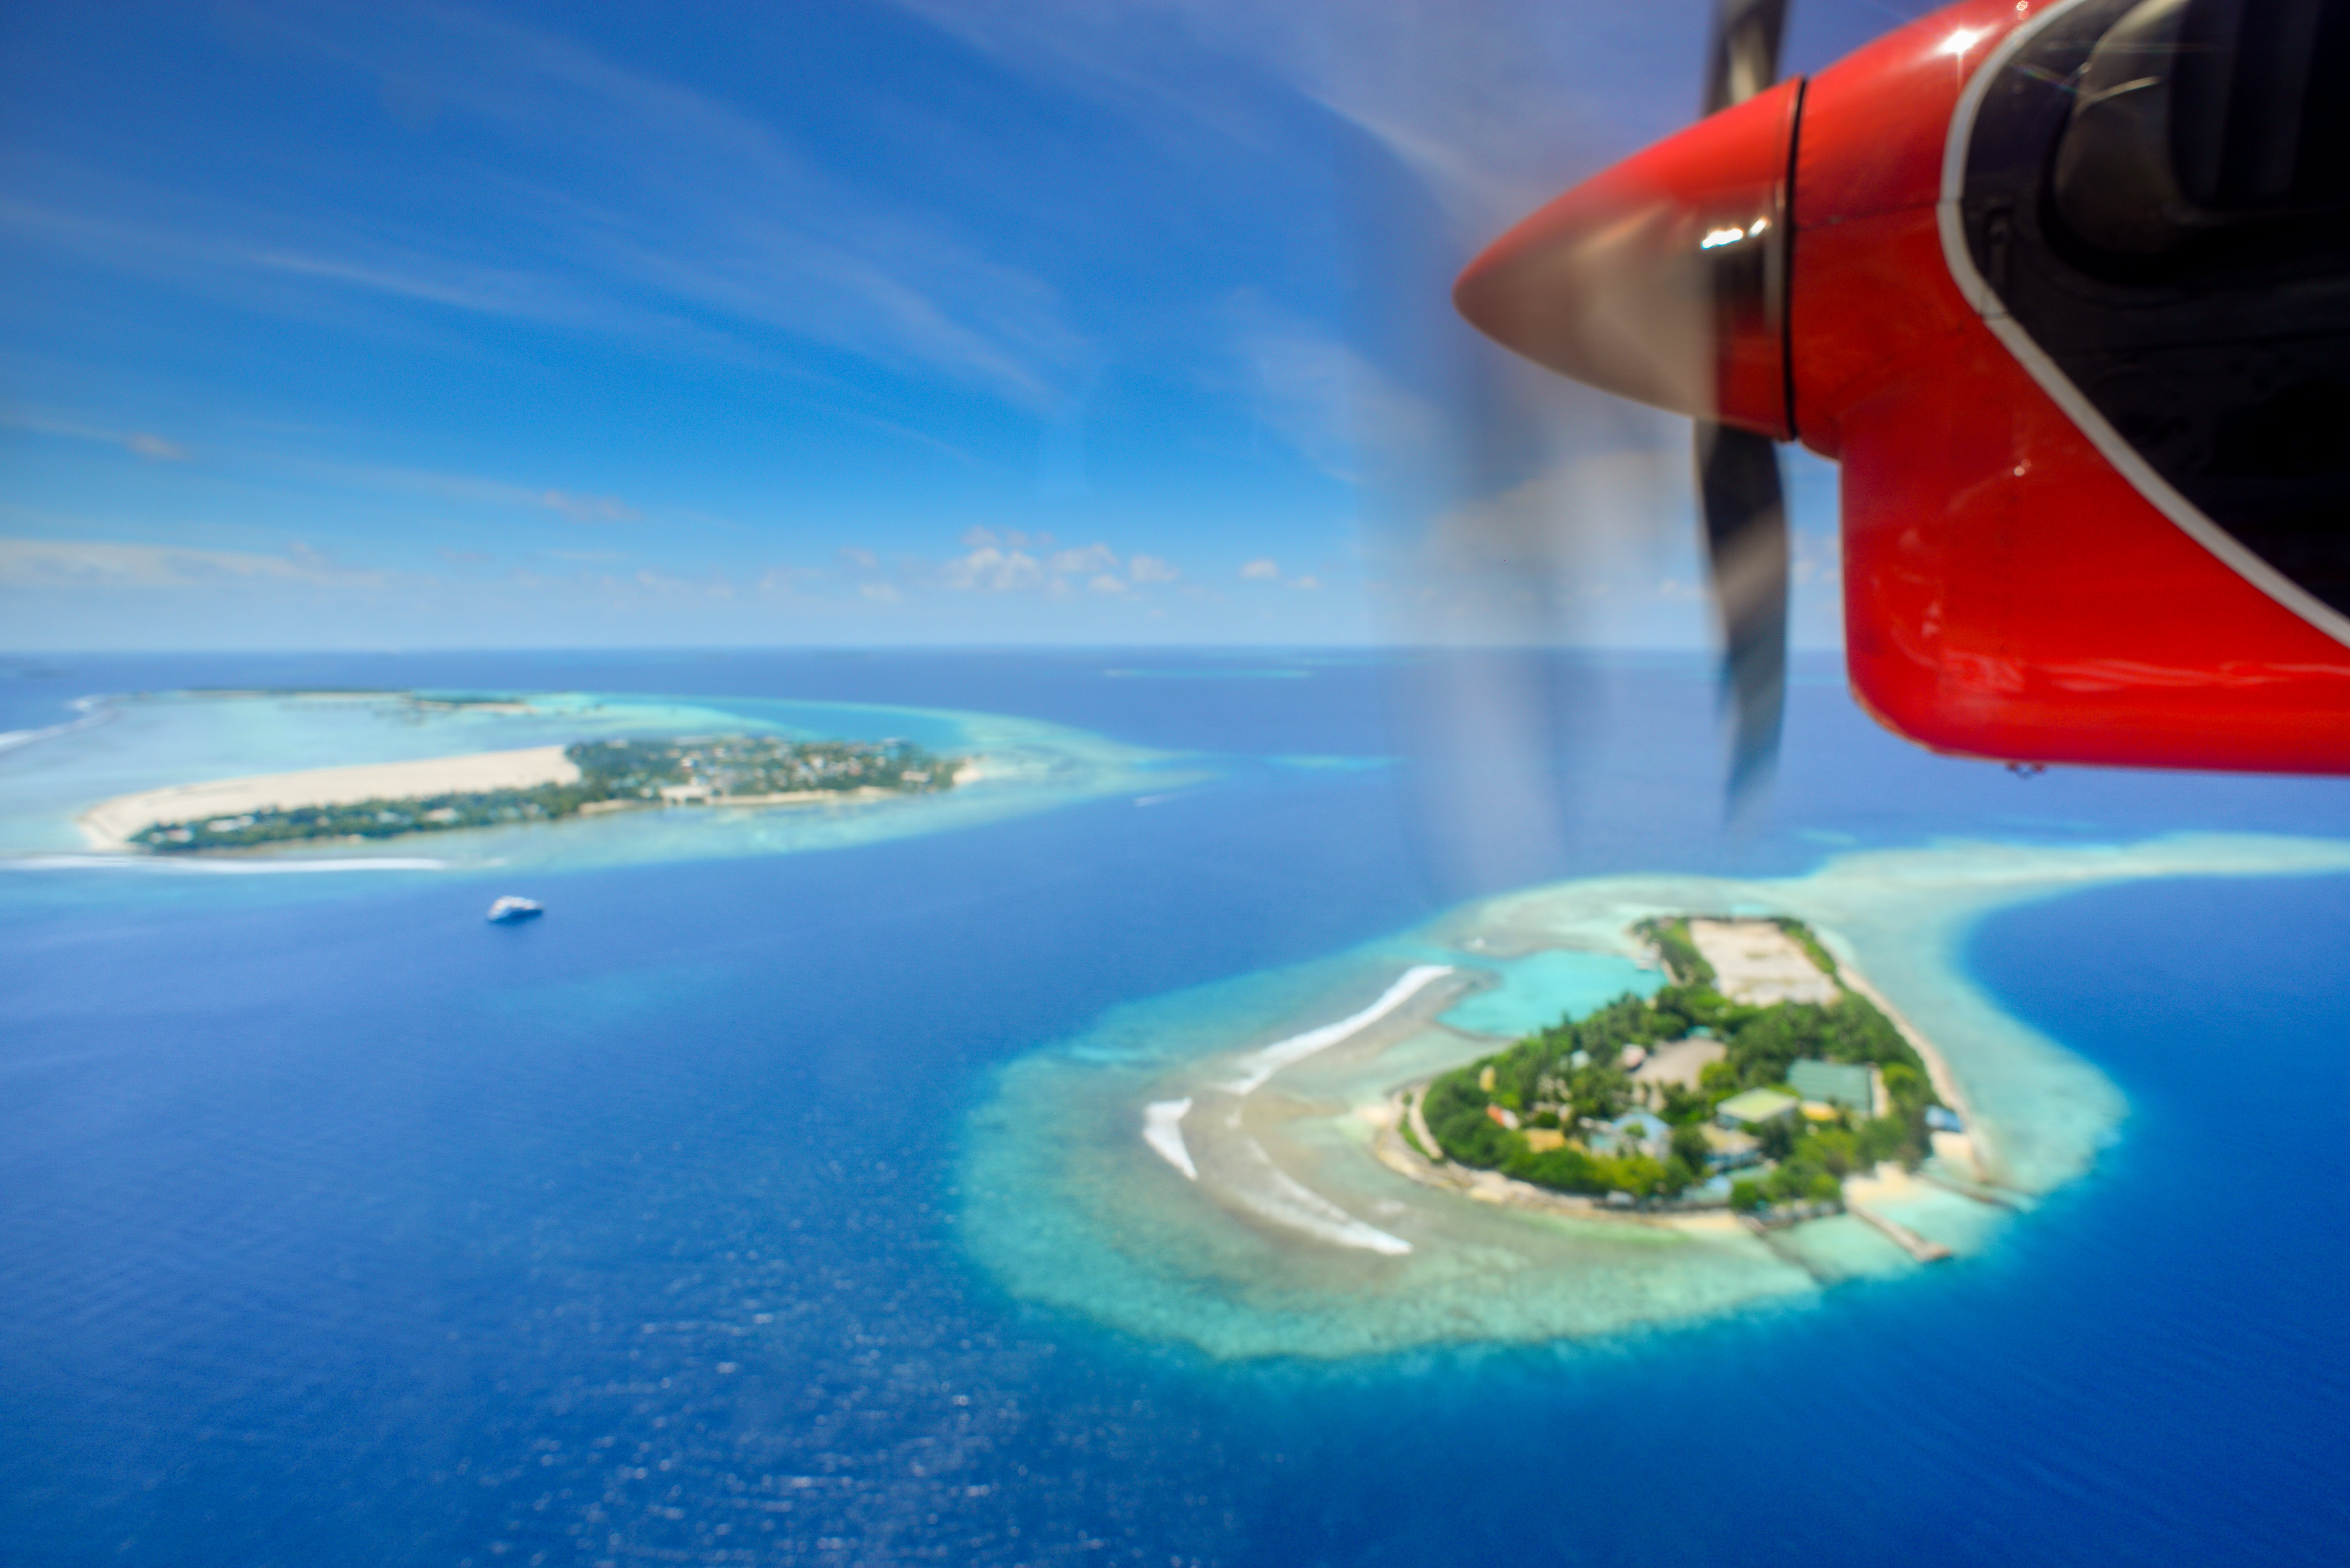 Aerial Photography of Red Plane